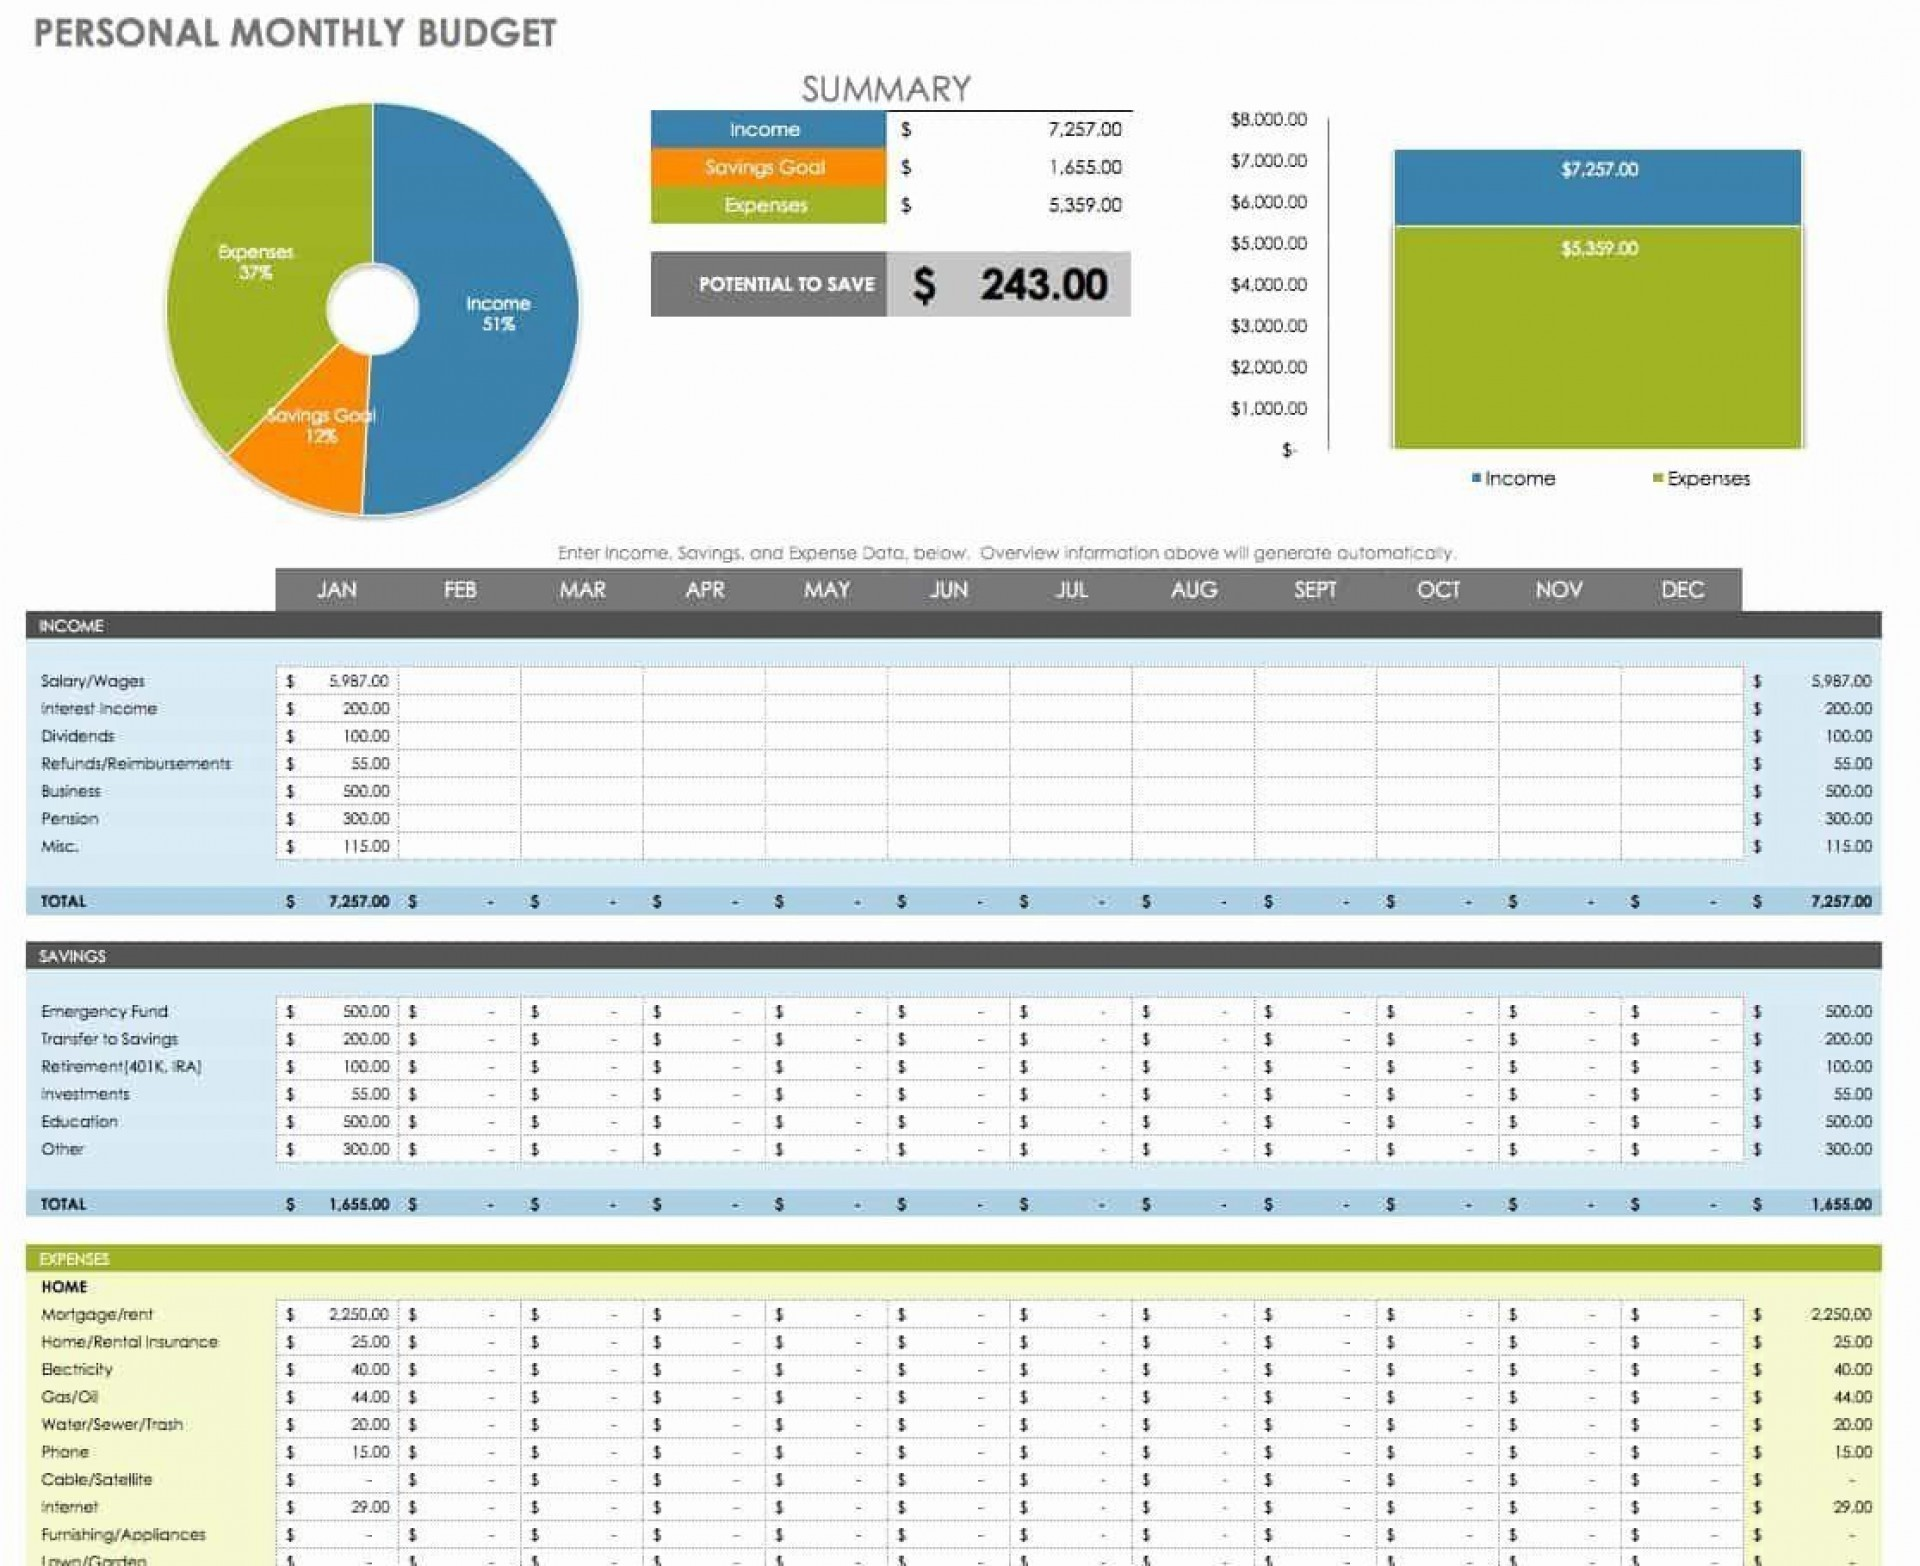 004 Excellent Personal Budgeting Template Excel Photo  Finance Free Expense Tracker Spreadsheet1920